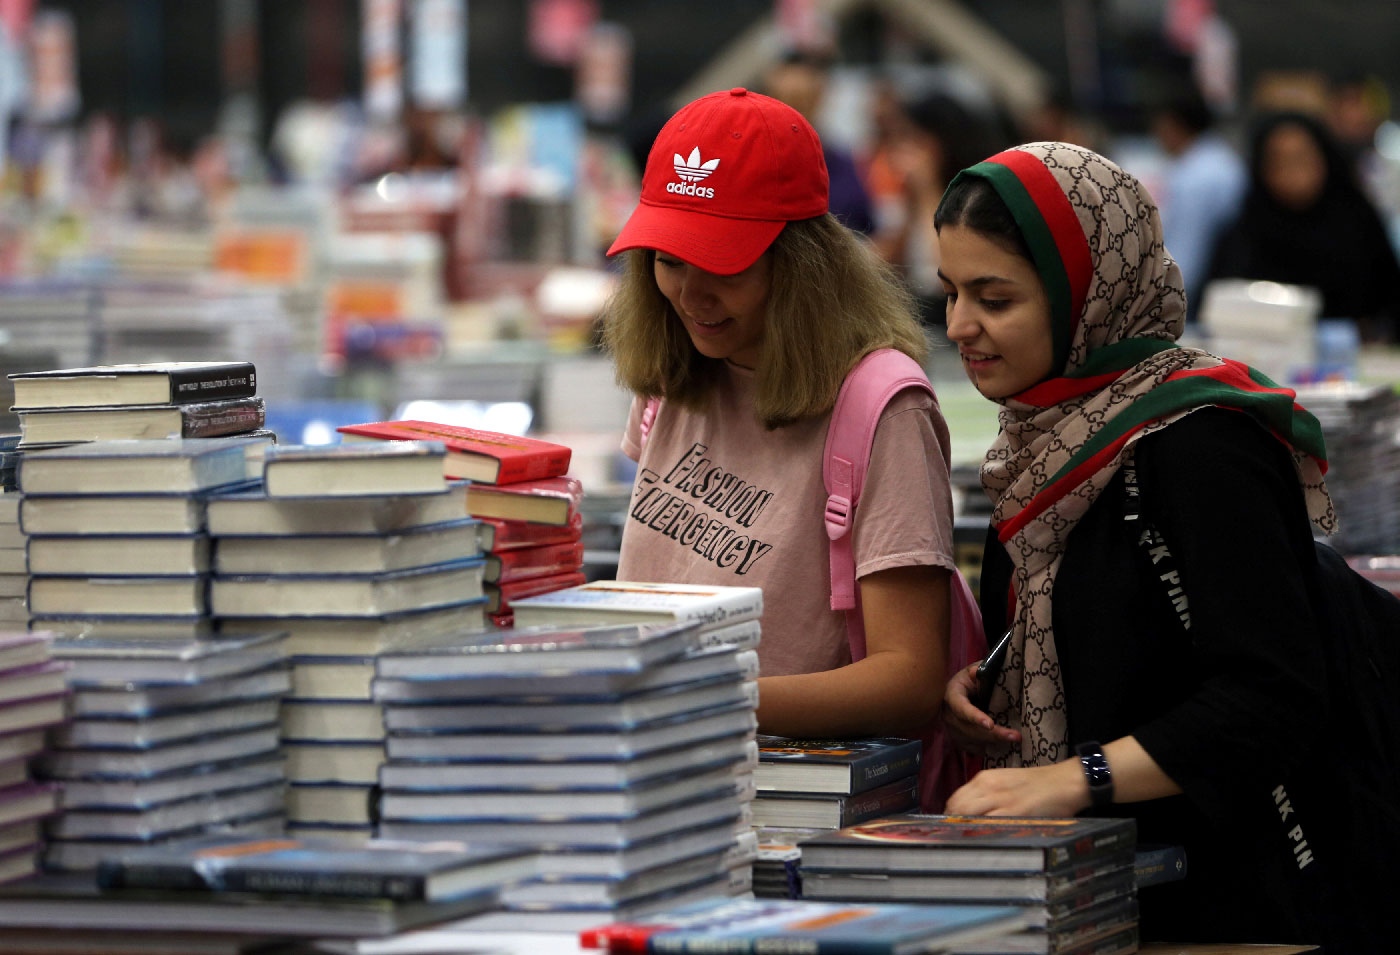 Visitors read books at the Big Bad Wolf Book Sale.